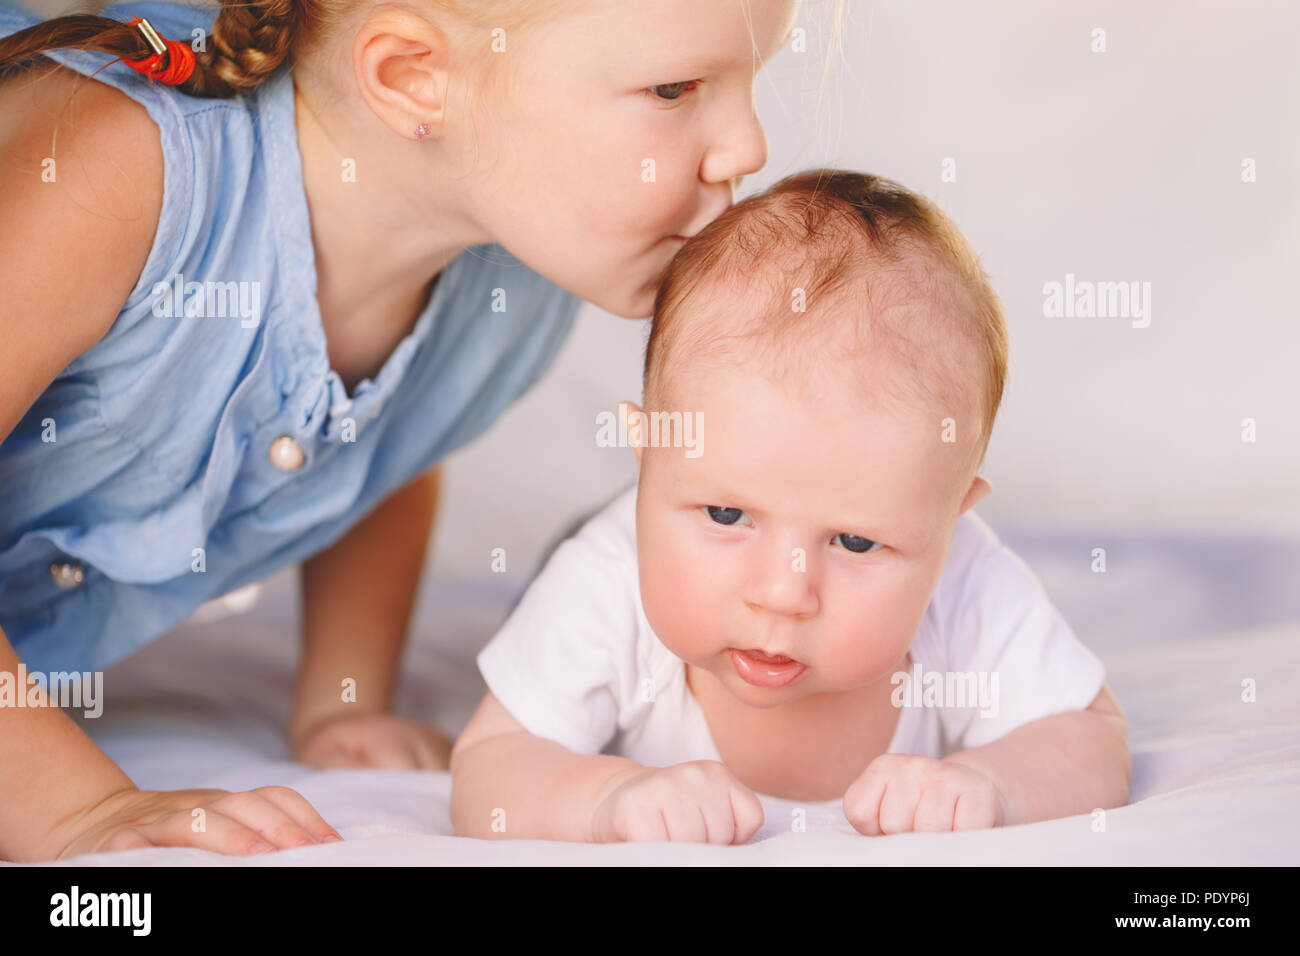 Lifestyle closeup portrait of cute white Caucasian girl sister kissing little baby, lying on bed indoors. Older sibling with younger brother newborn.  Stock Photo